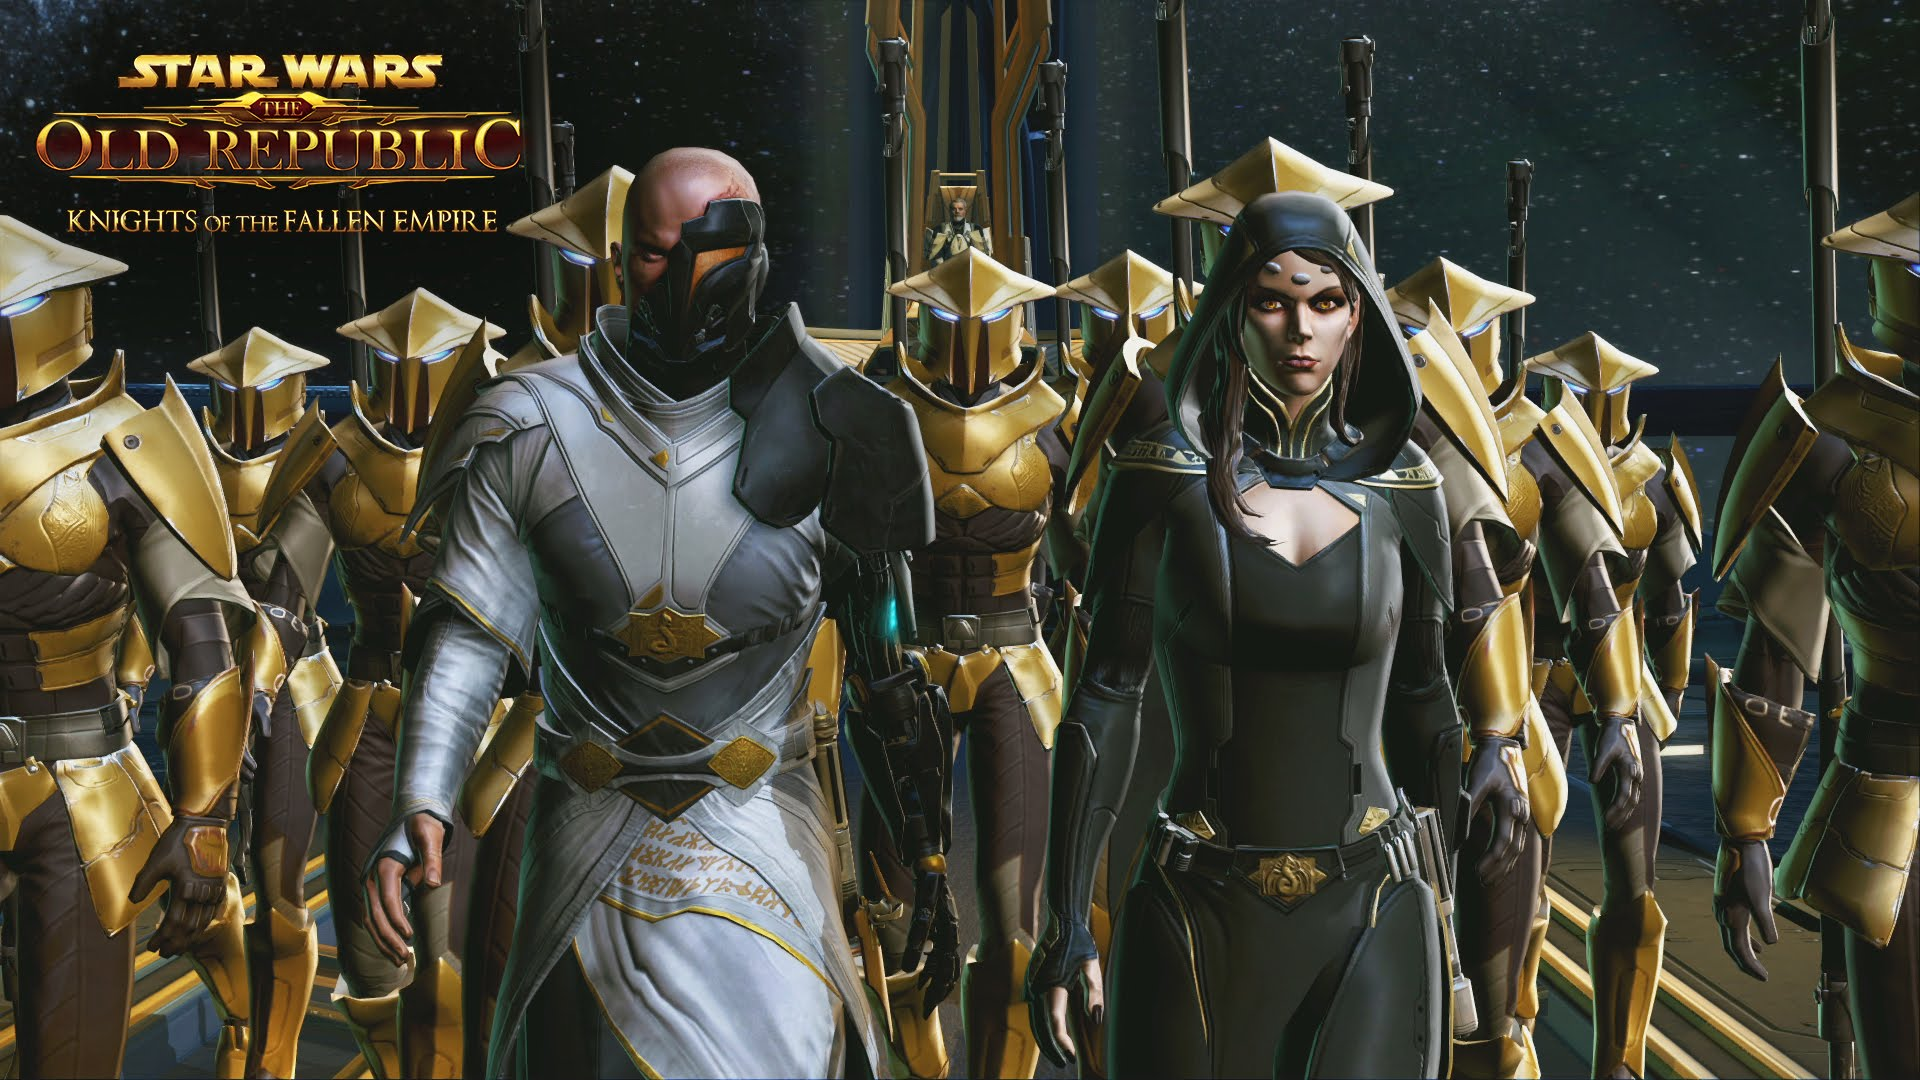 Swtor Knights Of The Fallen Empire Hero S Saga Trailer Star Wars Gaming Star Wars Gaming News